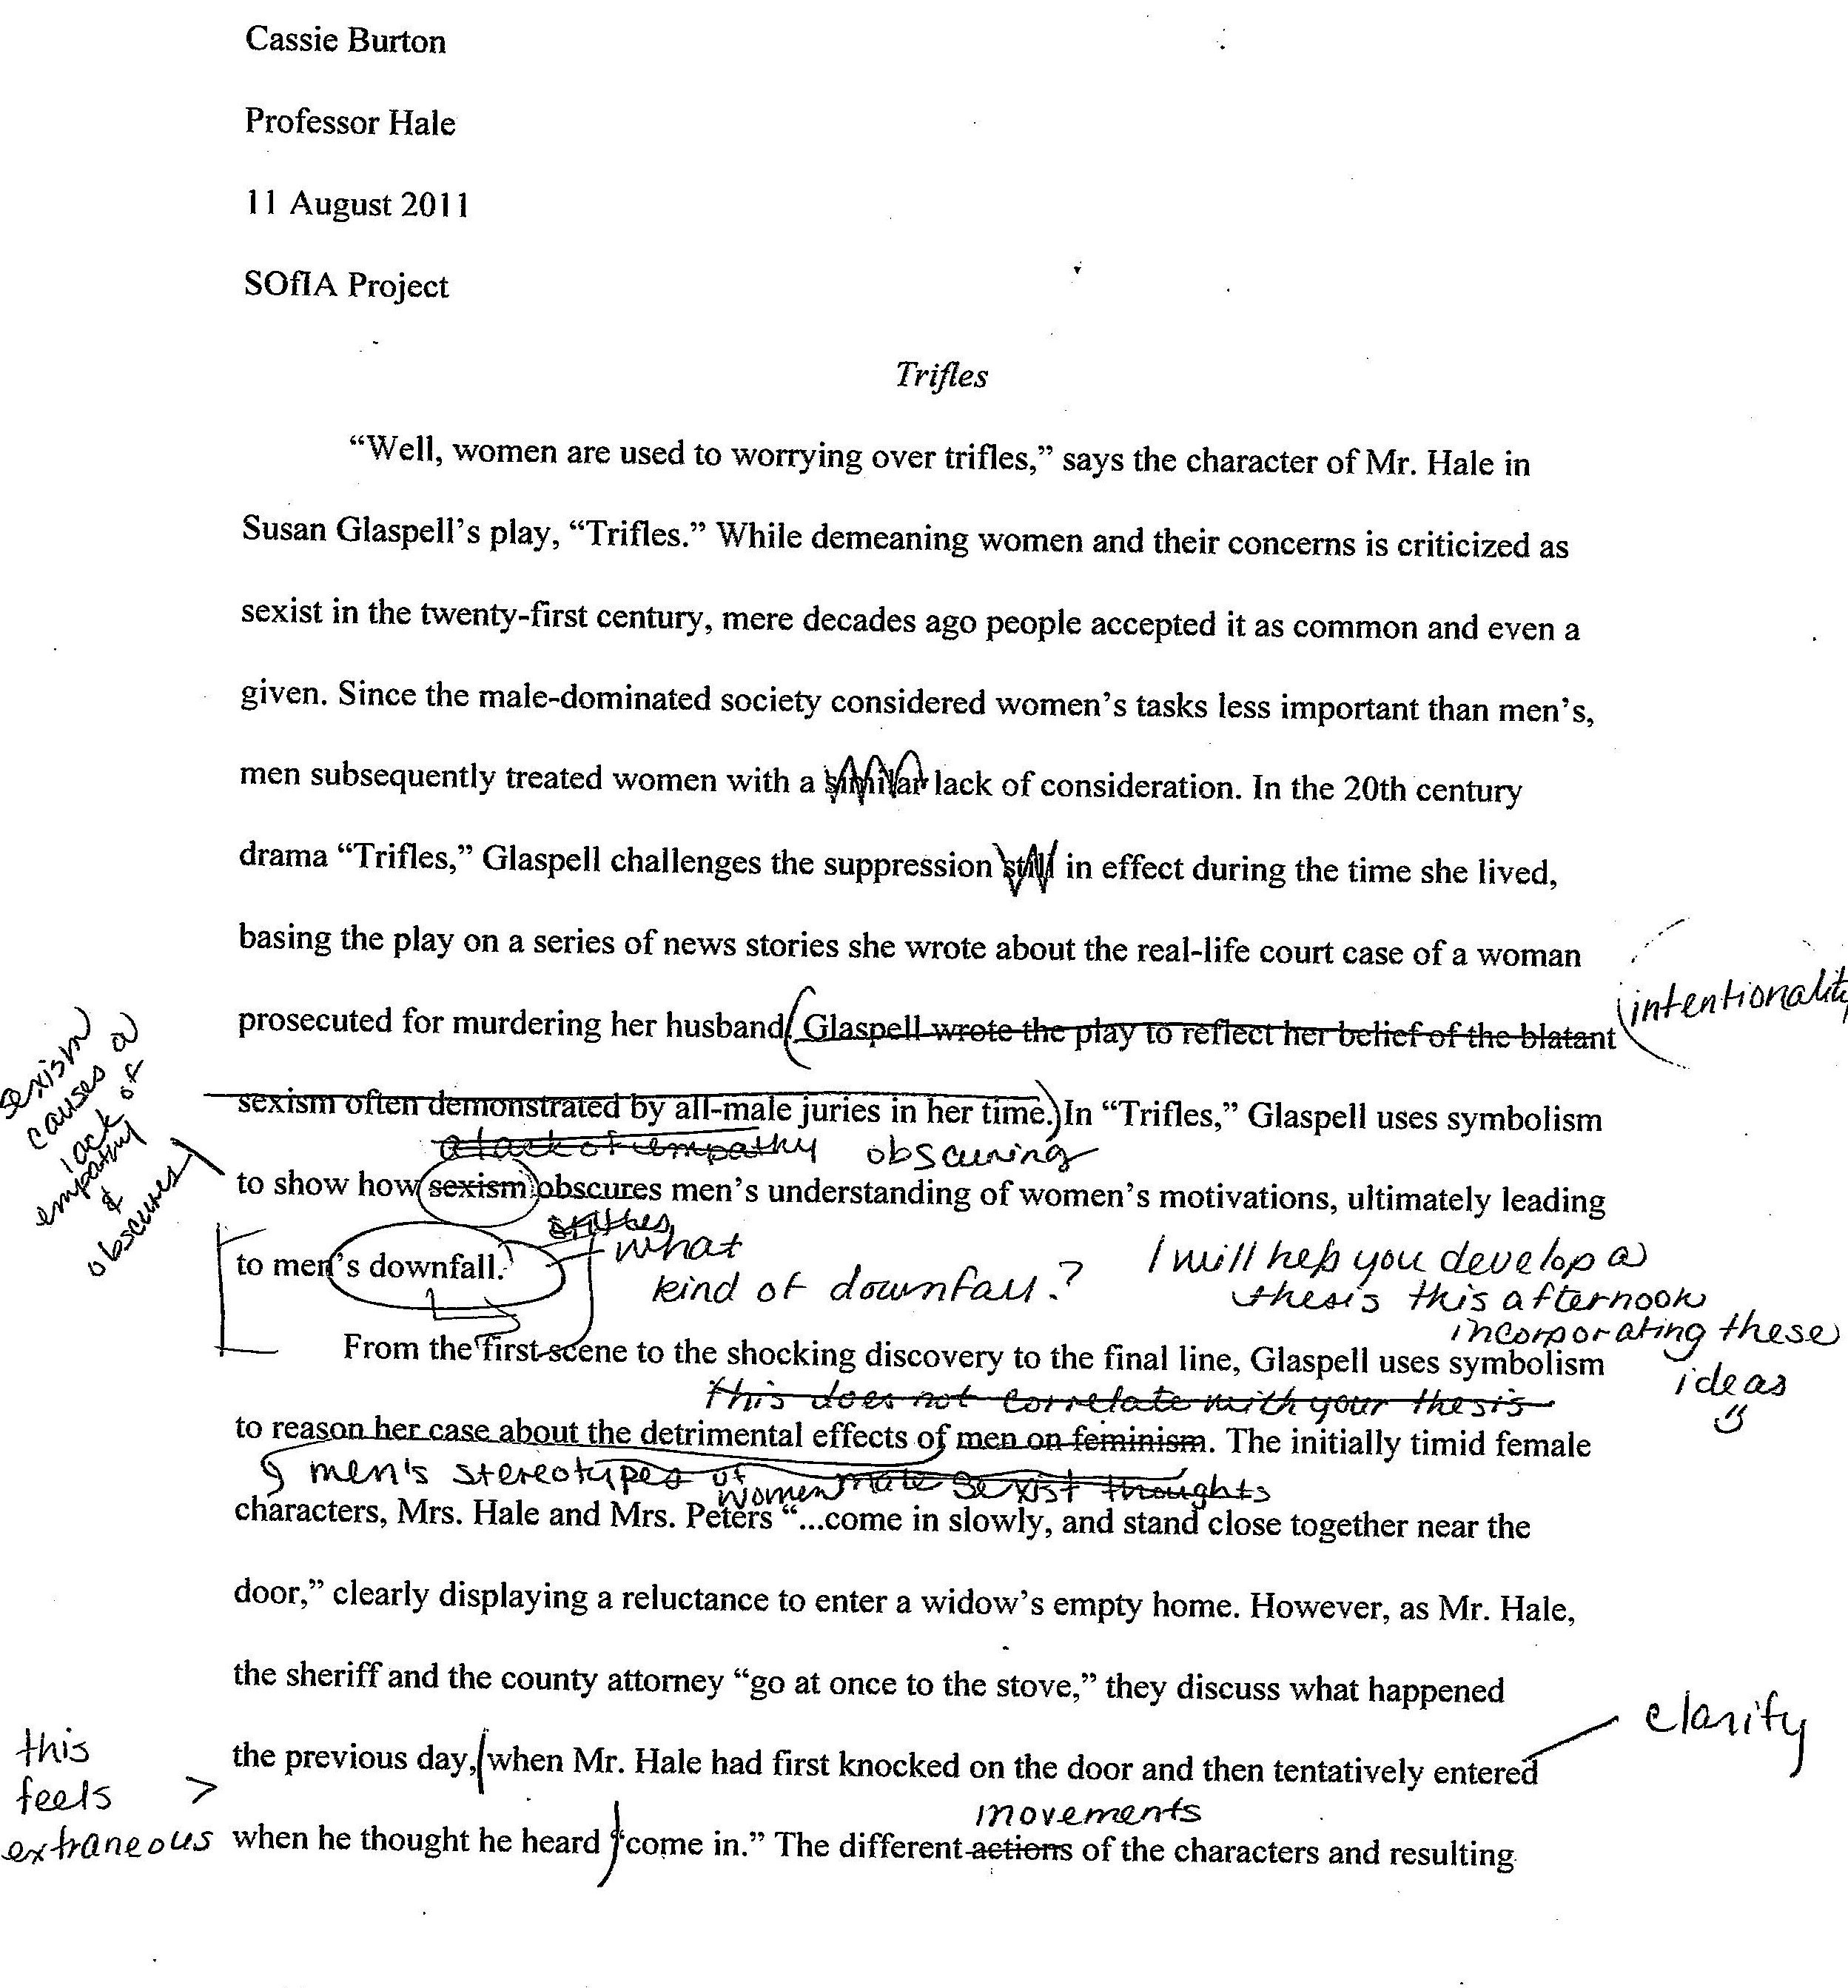 symbolism essay examples trifles by susan glaspell students  trifles by susan glaspell students teaching english paper strategies second peer edit page 1 good college admission essays example